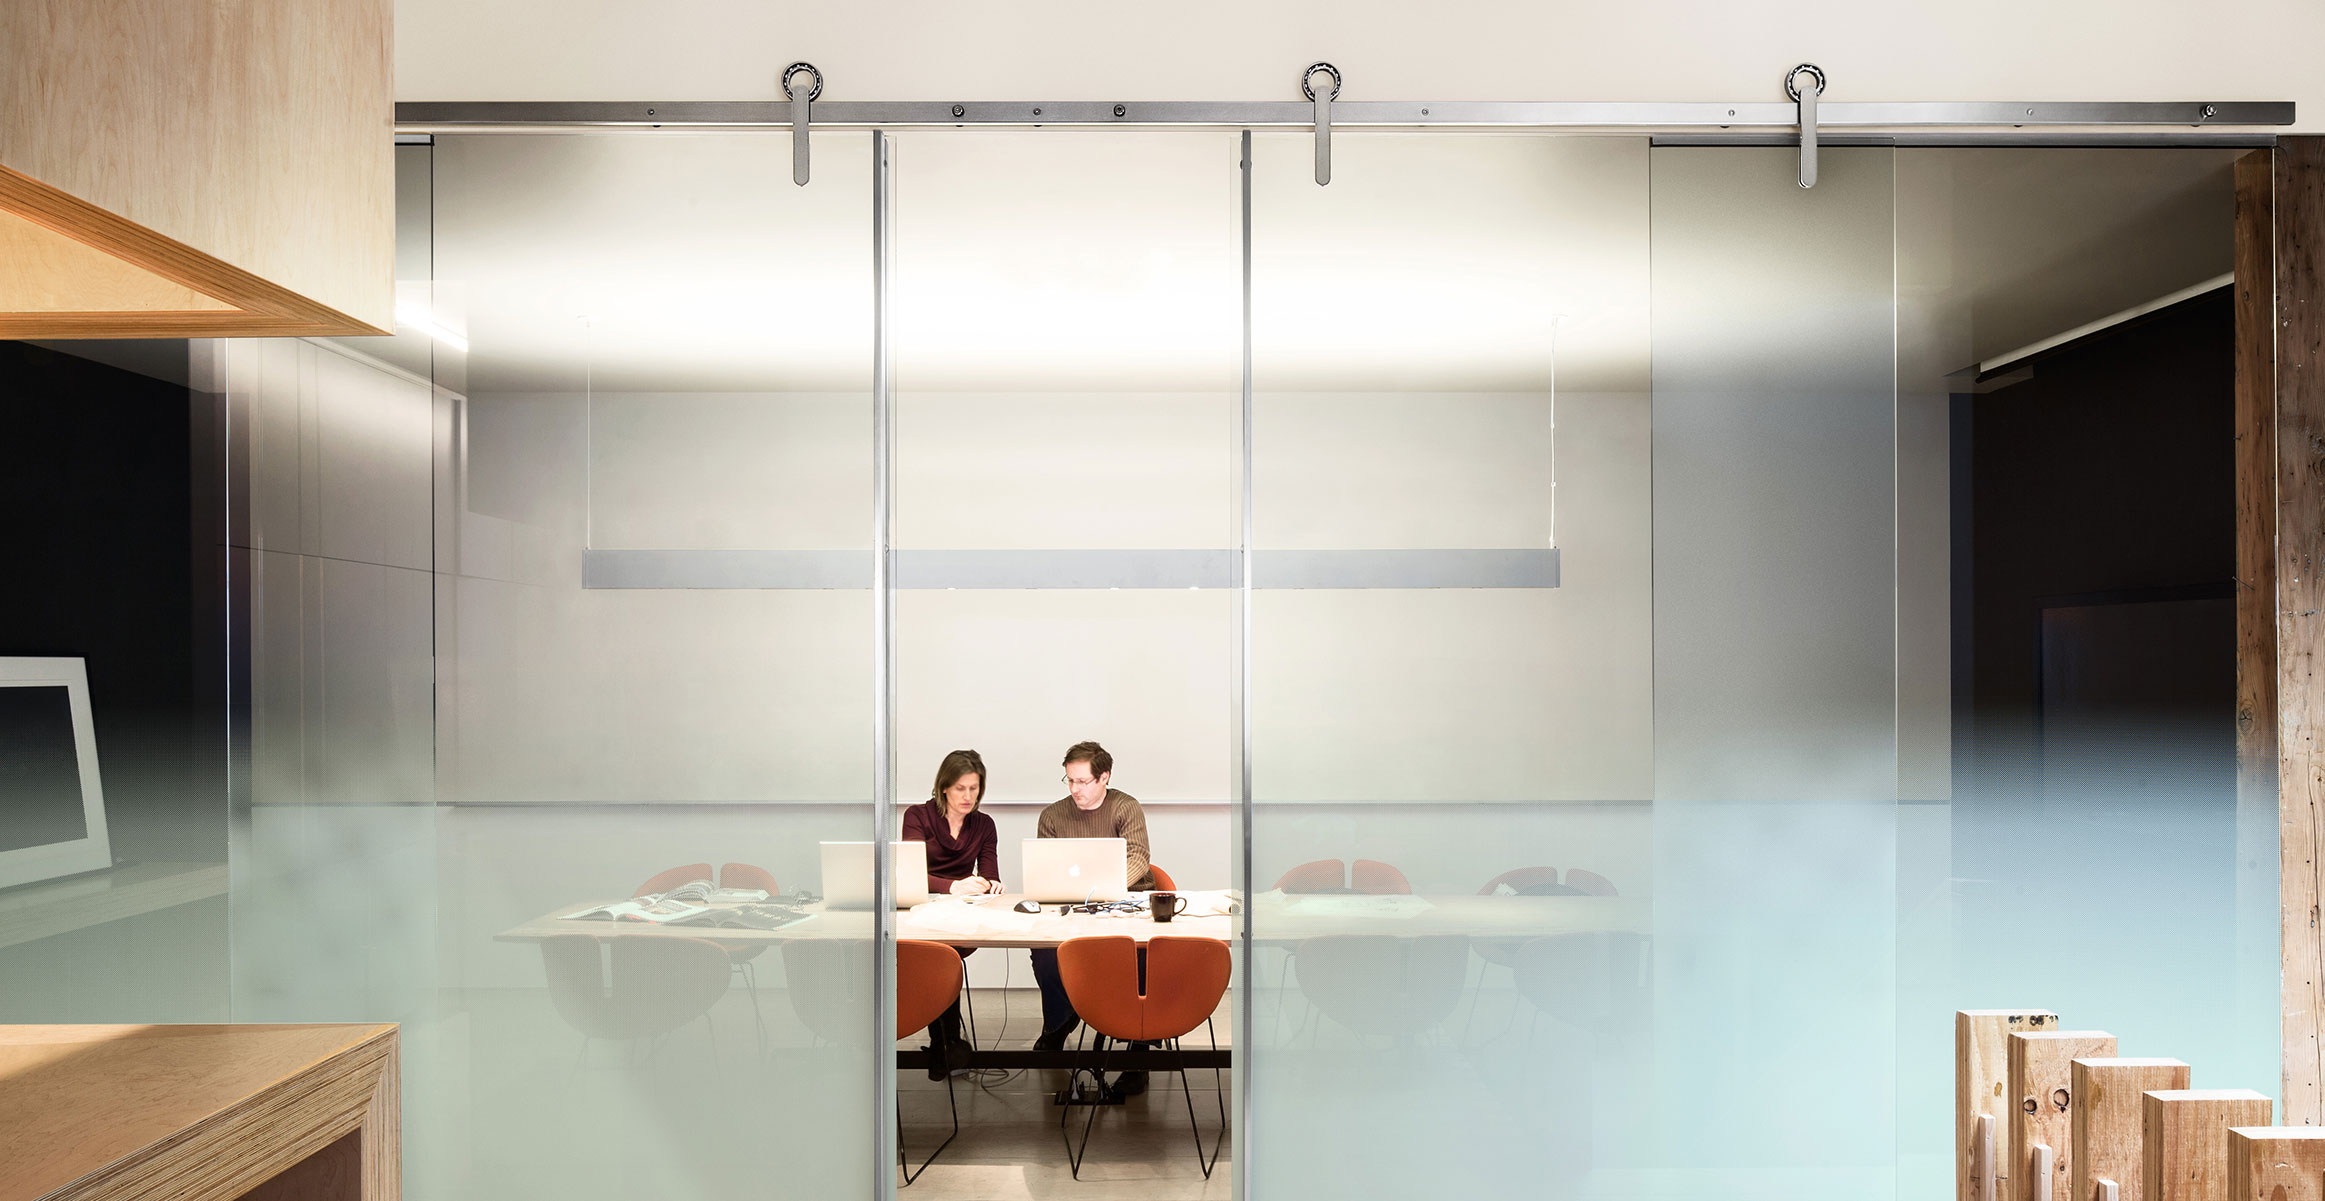 Glass conference room sliding doors with vertical stainless steel pulls